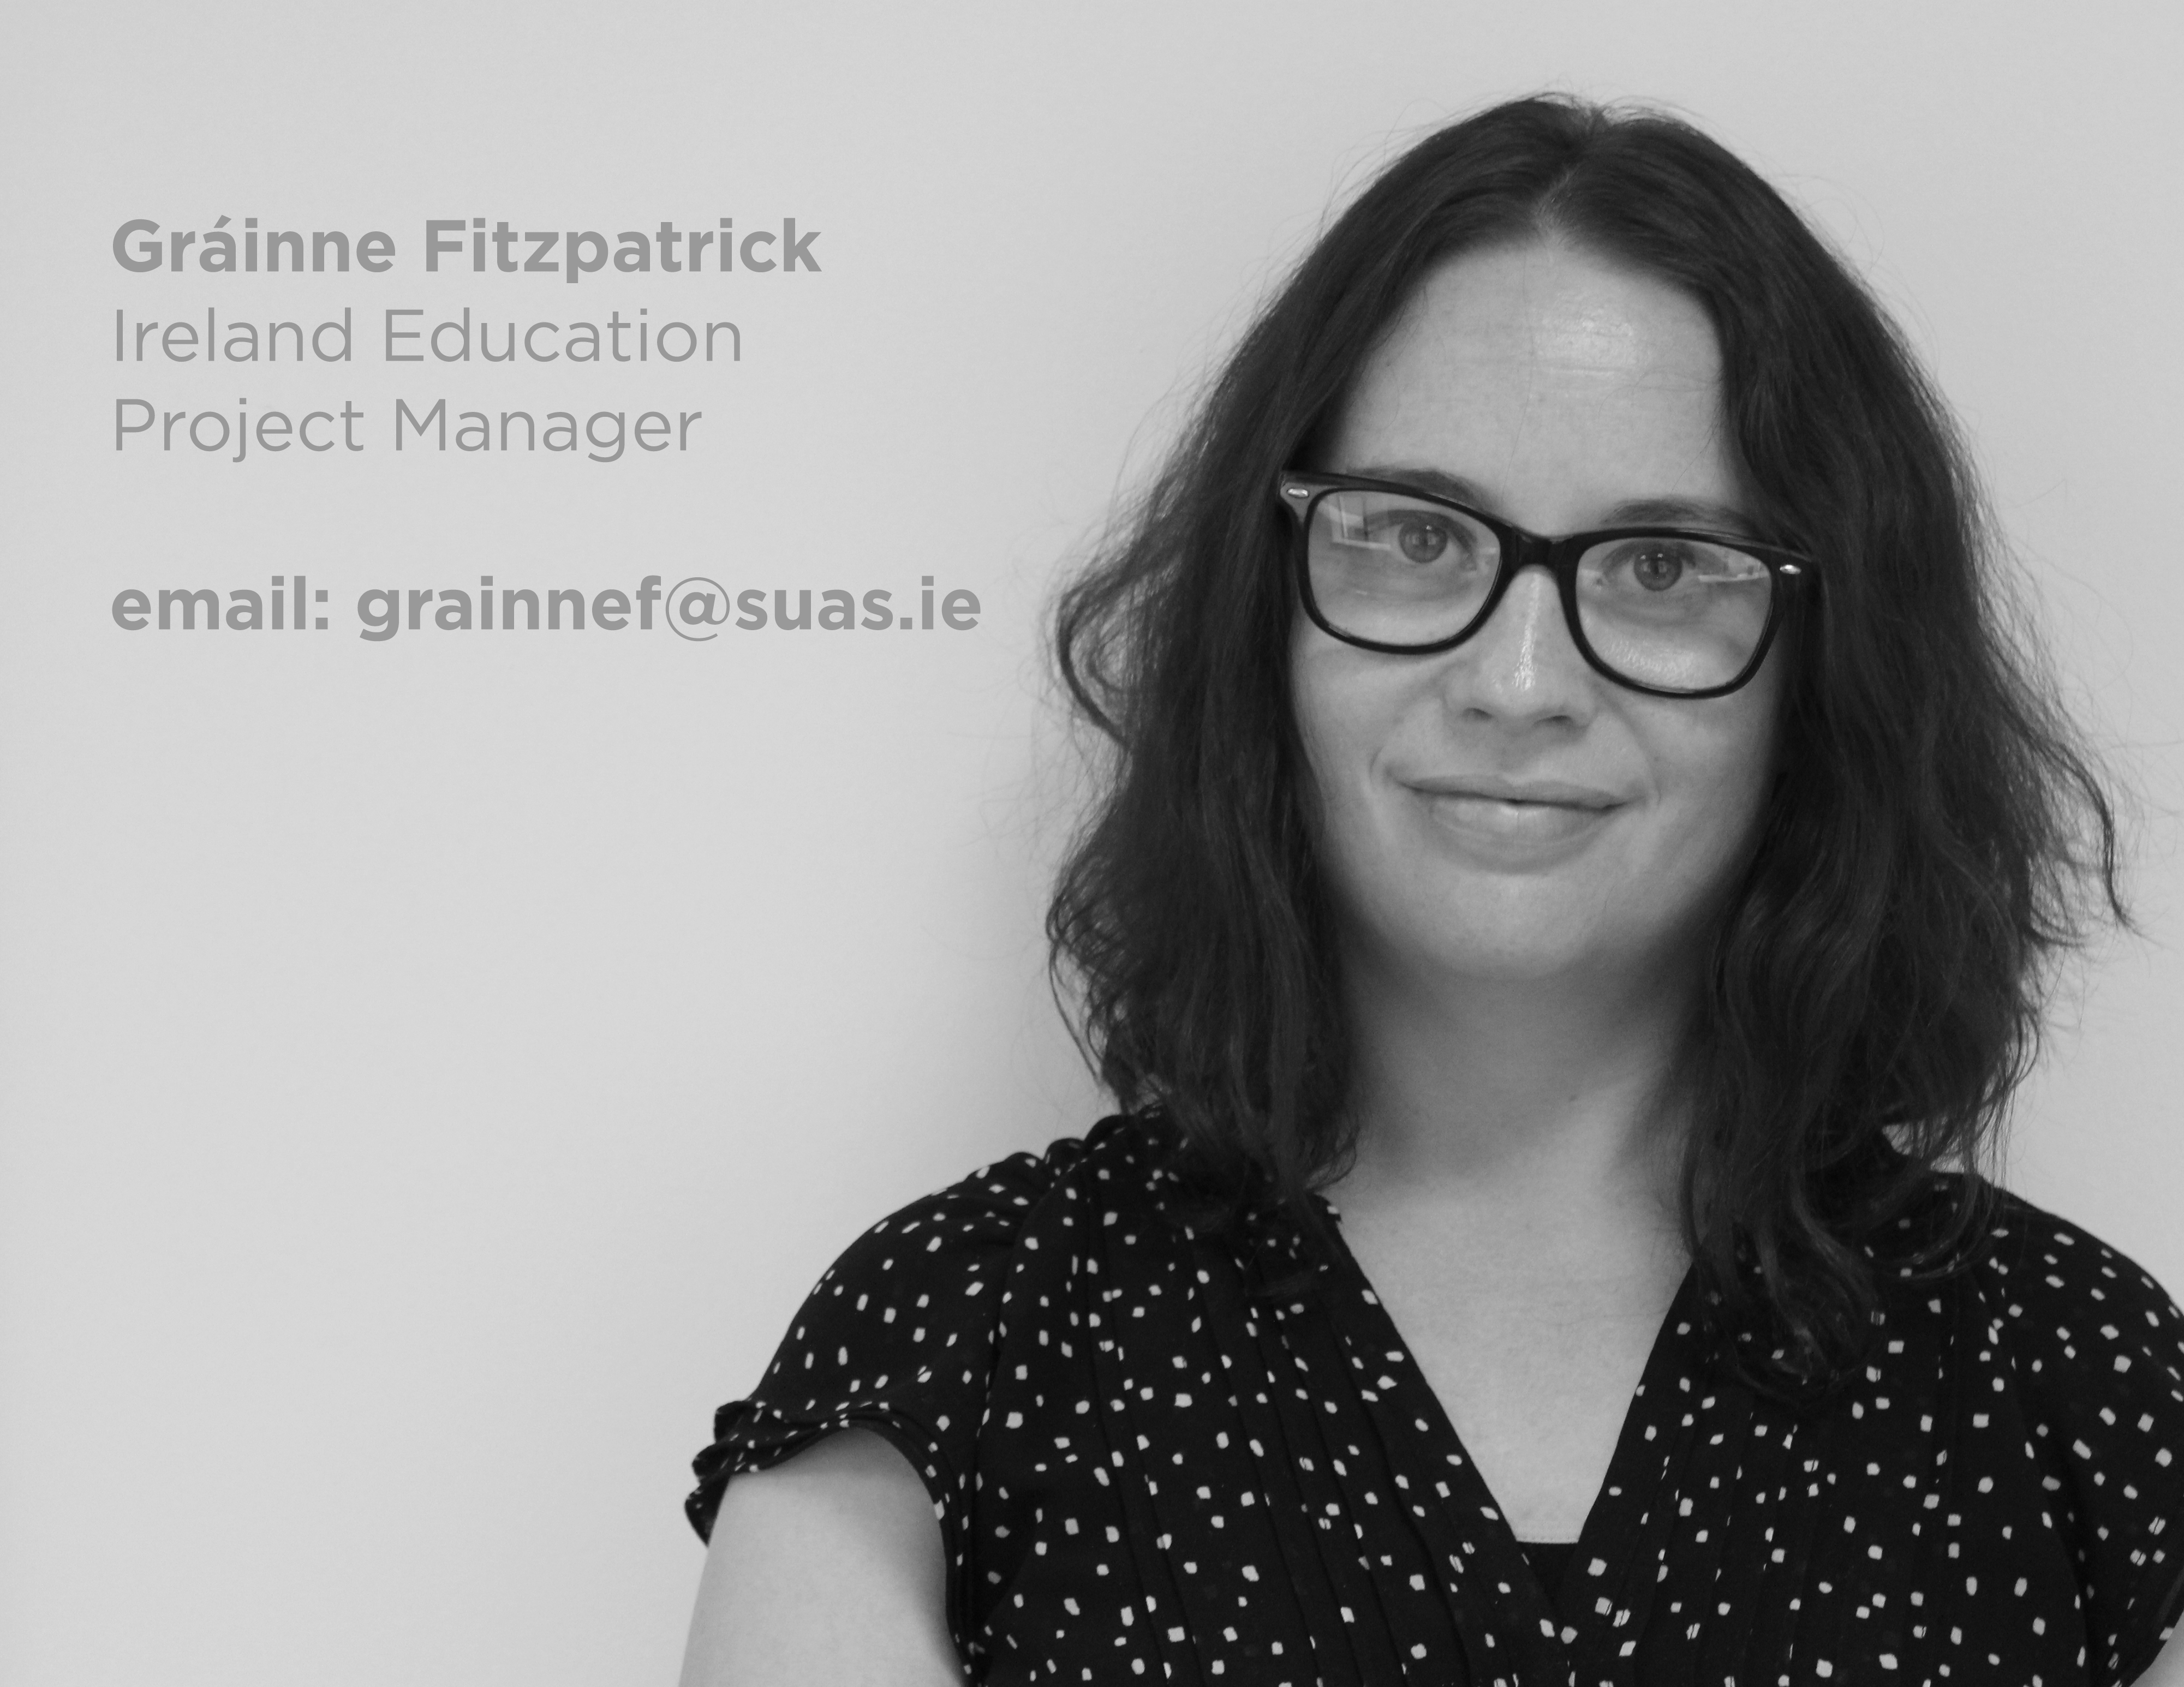 Gráinne Fitzpatrick, Suas Educational Development, Ireland Education Project Manager